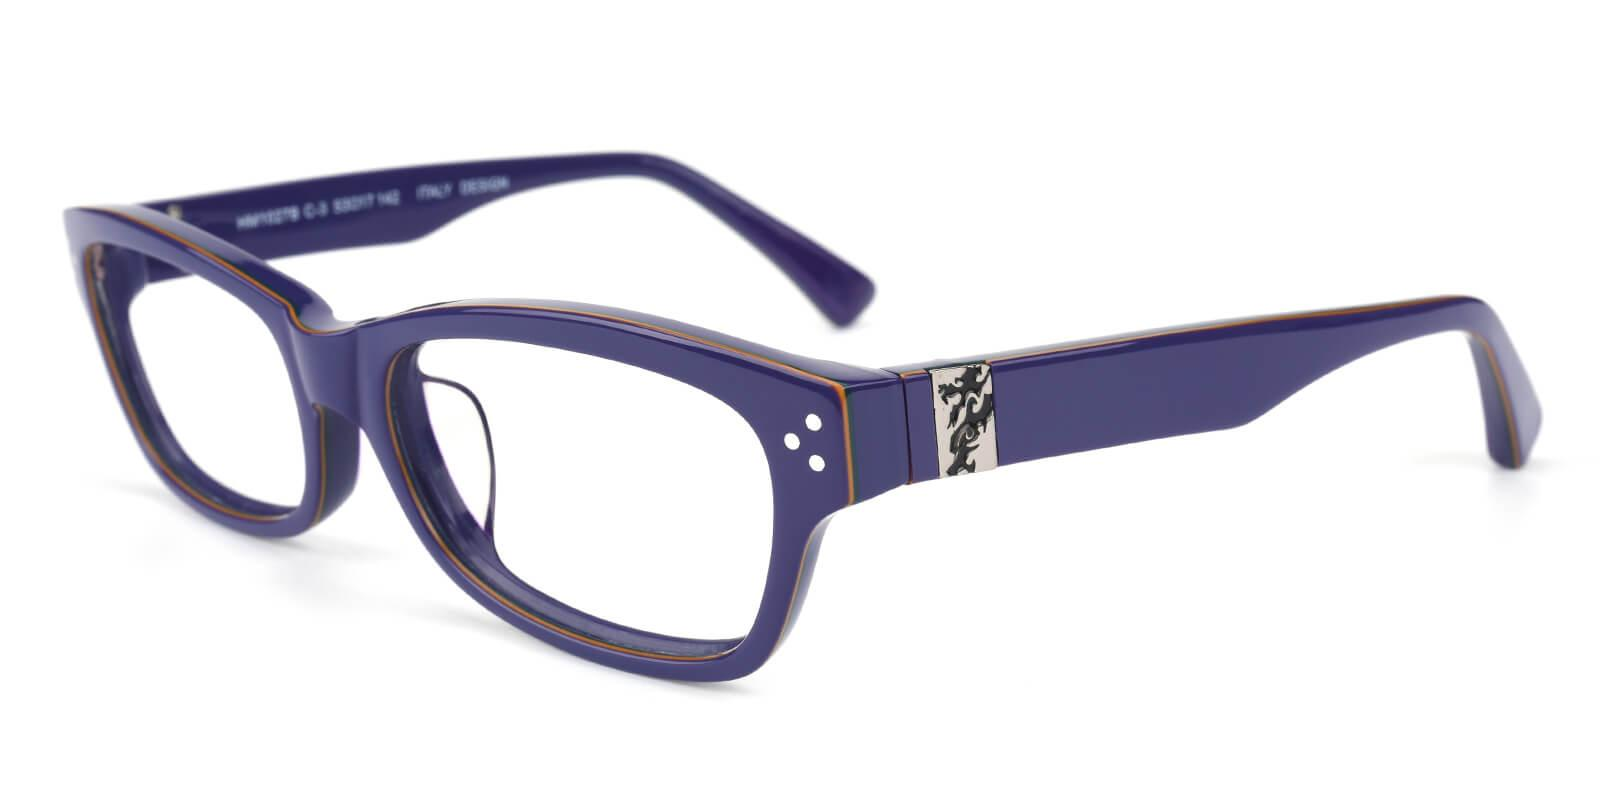 Flymingo-Purple-Rectangle-Acetate-Eyeglasses-additional1